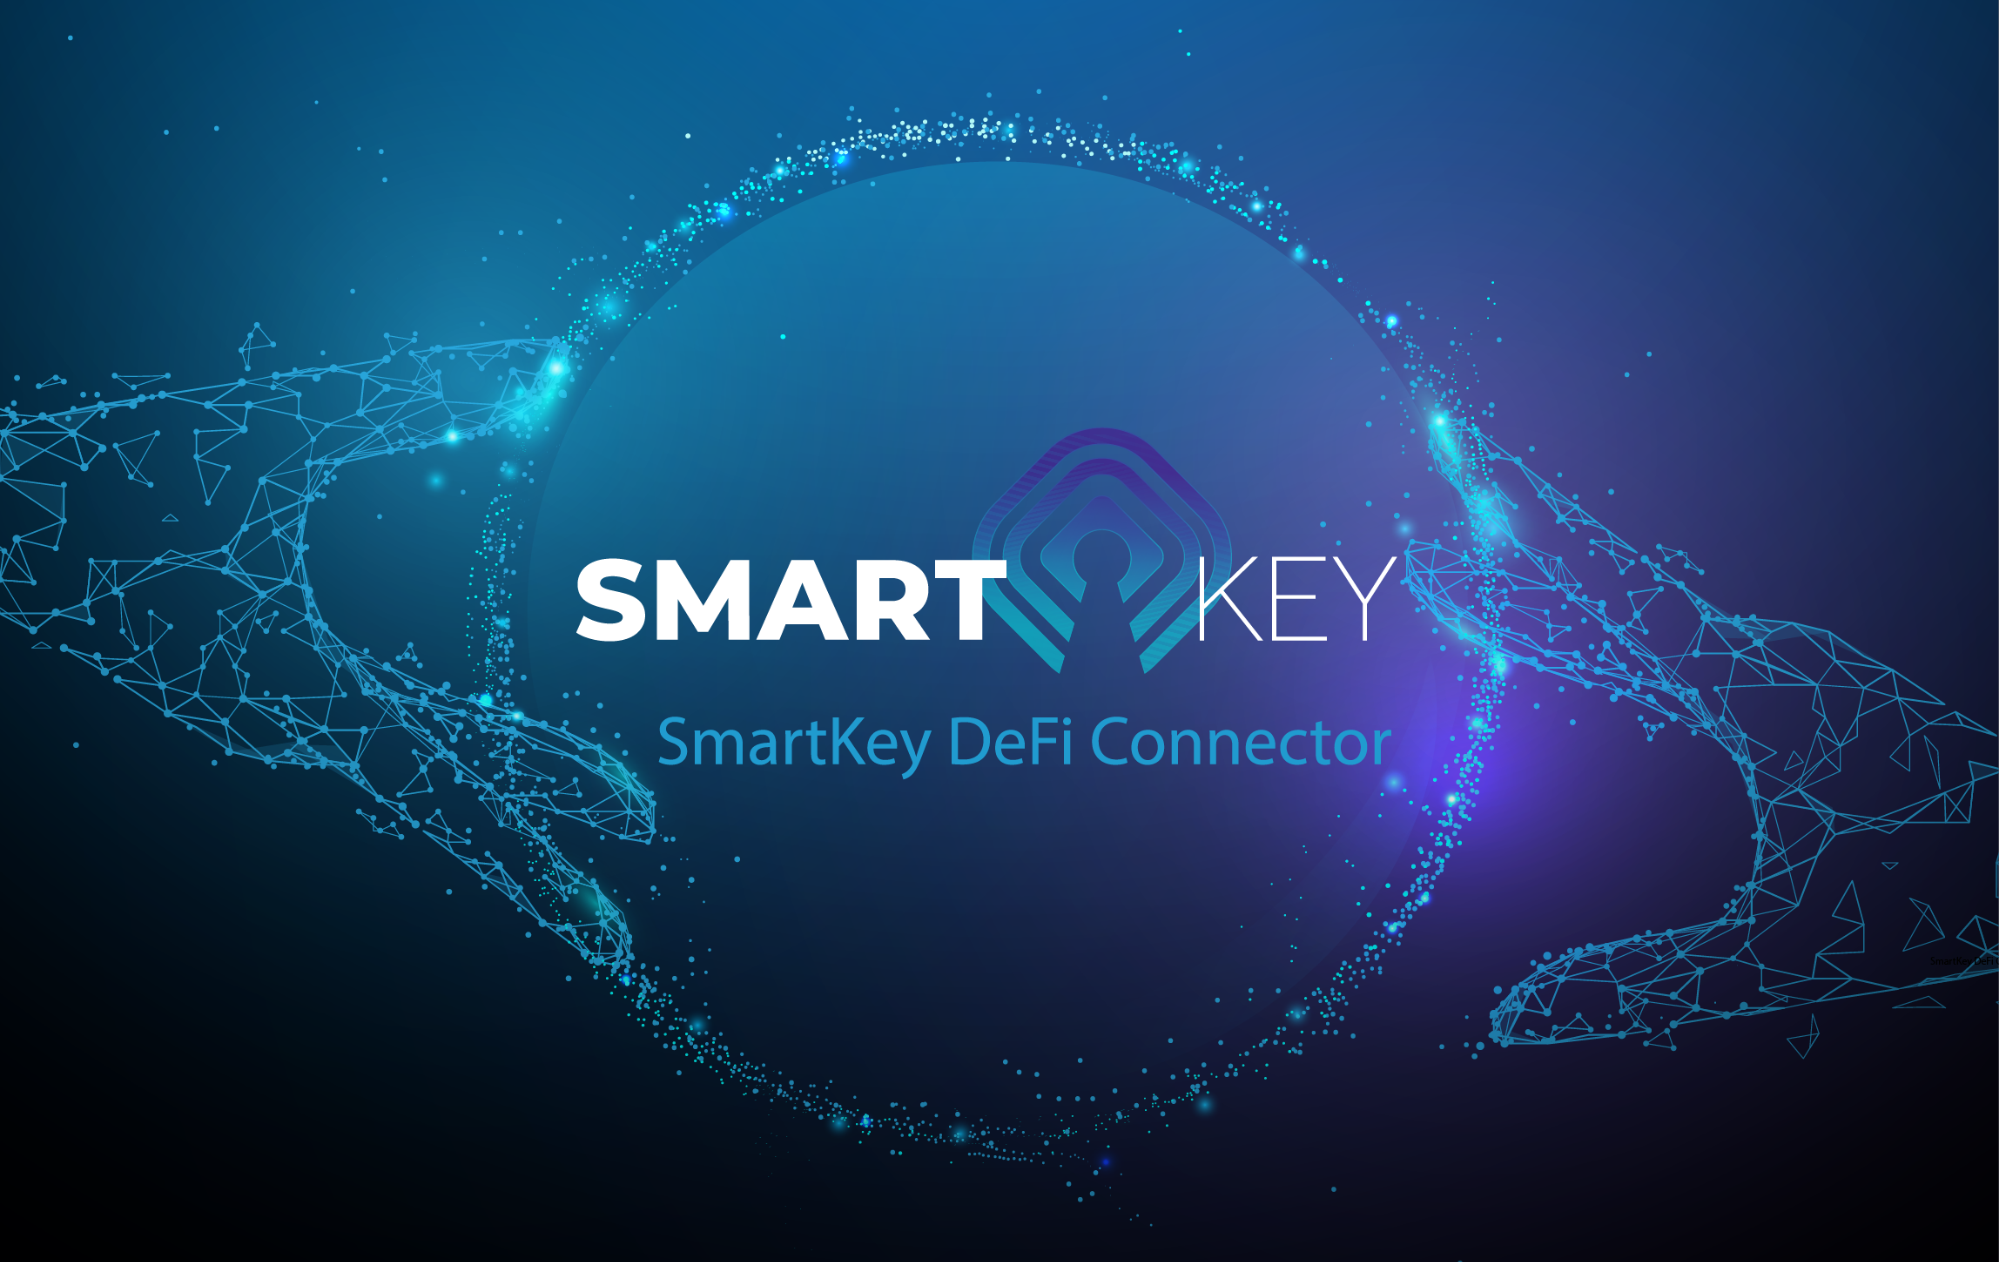 SmartKey - a safe haven for DeFi enthusiasts and crypto investors